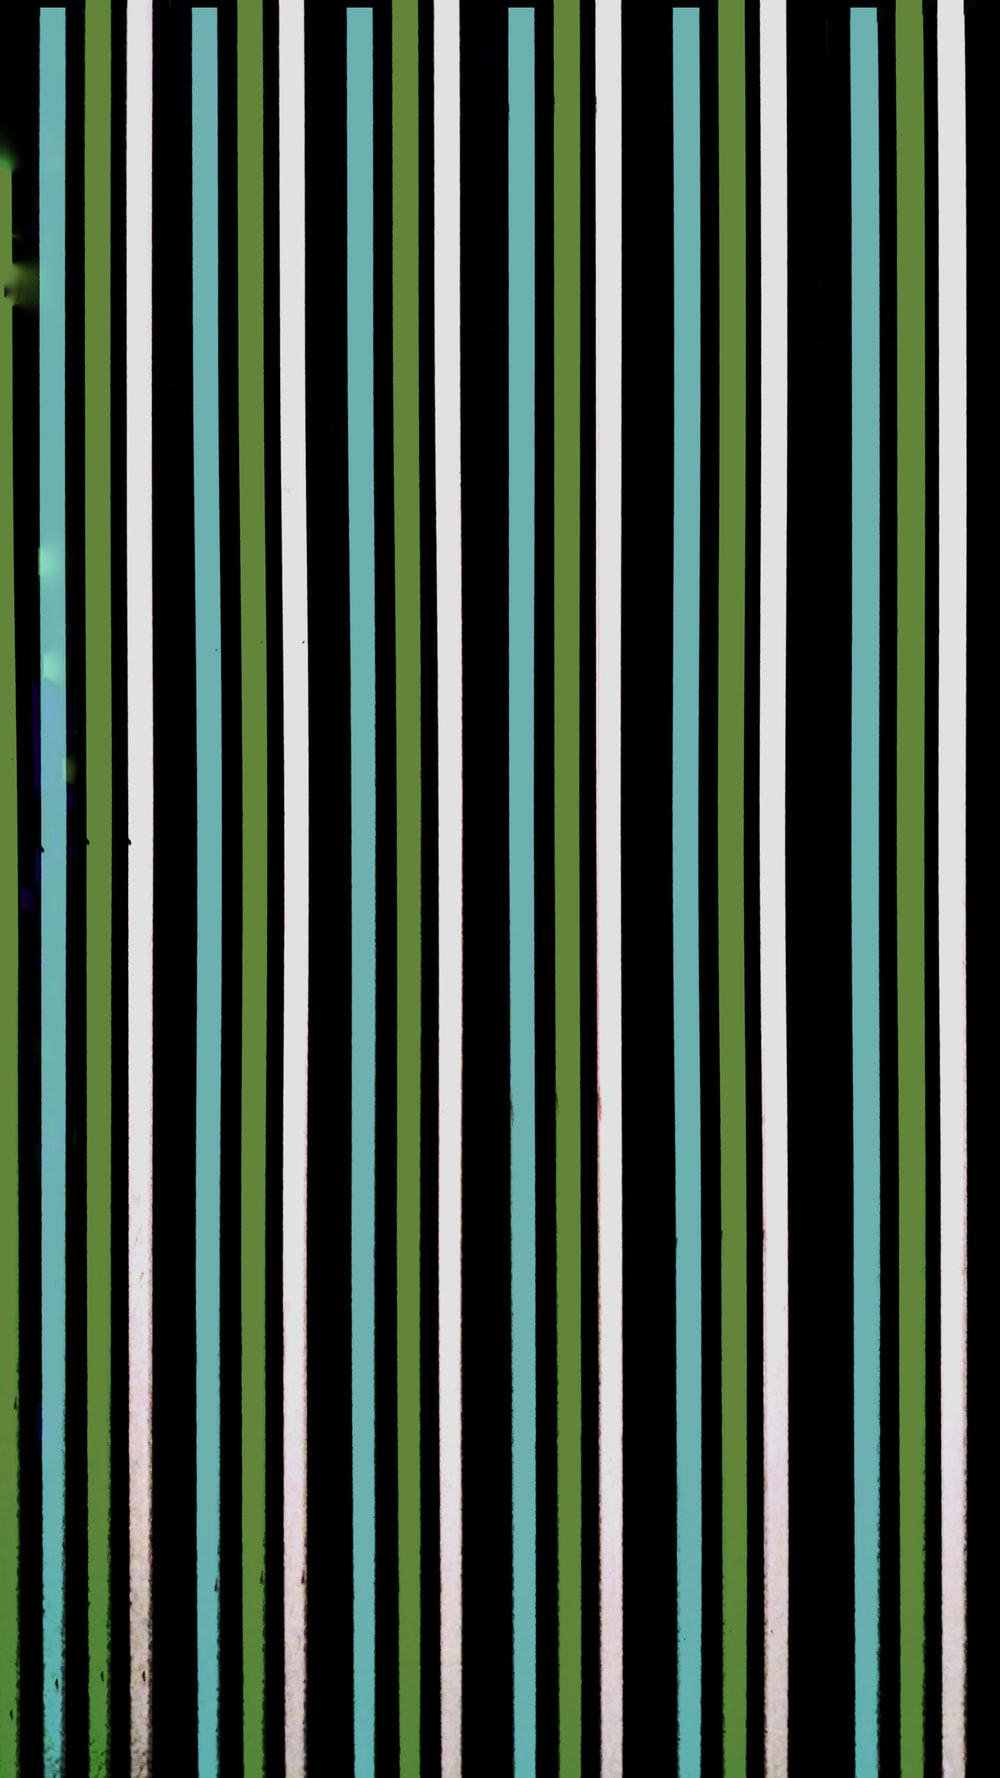 black, white, and green stripe digital wallpaper